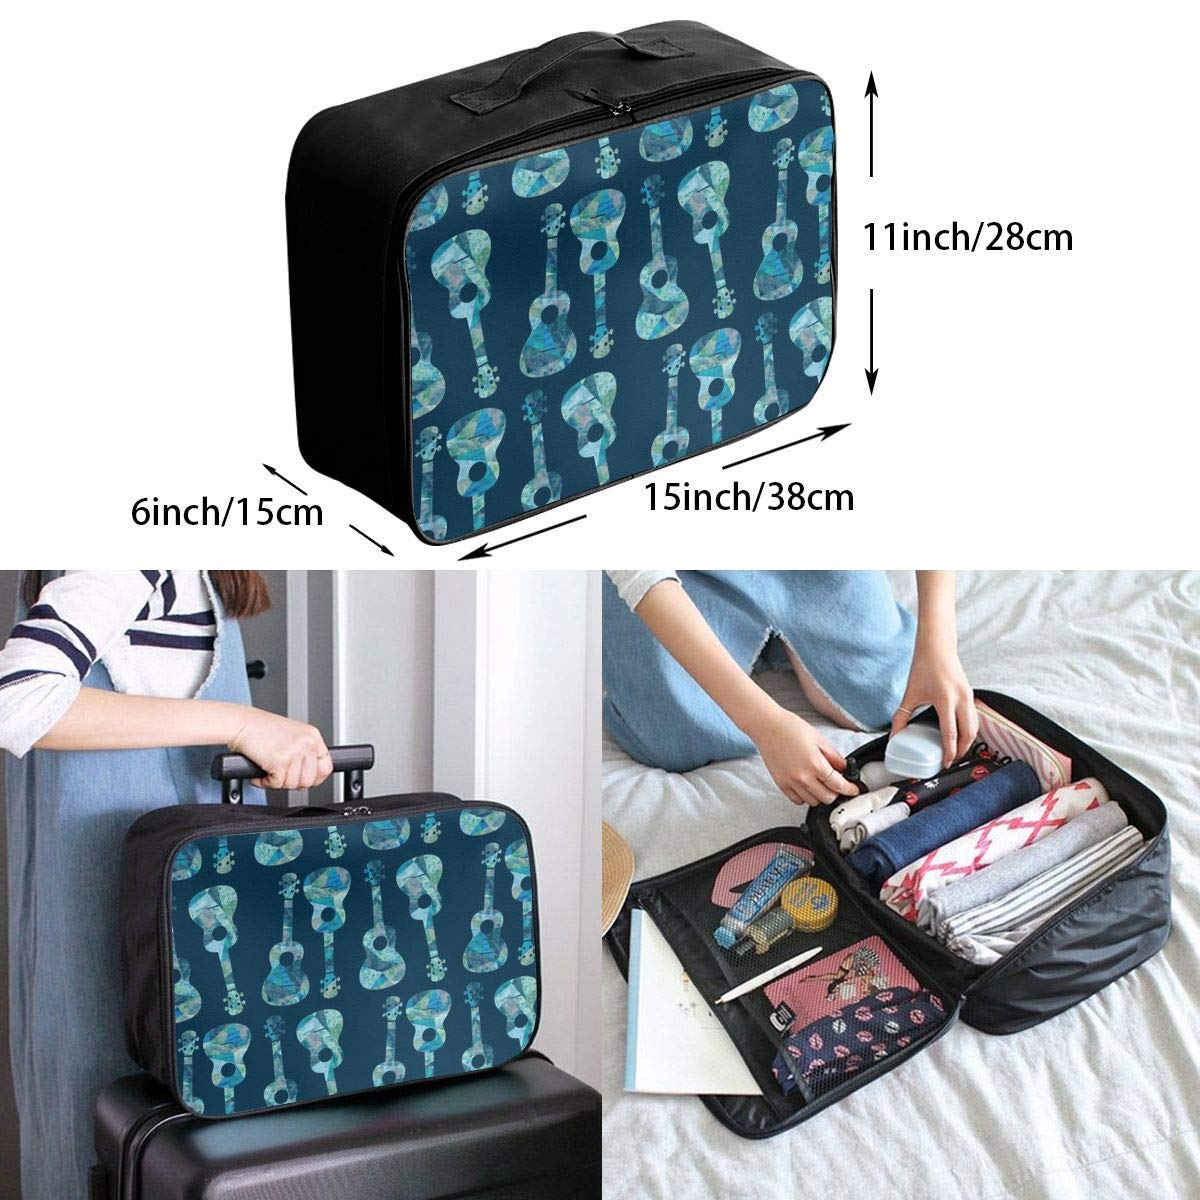 Guitar Ukulele Watercolor Travel Lightweight Waterproof Foldable Storage Carry Luggage Duffle Tote Bag JTRVW Luggage Bags for Travel